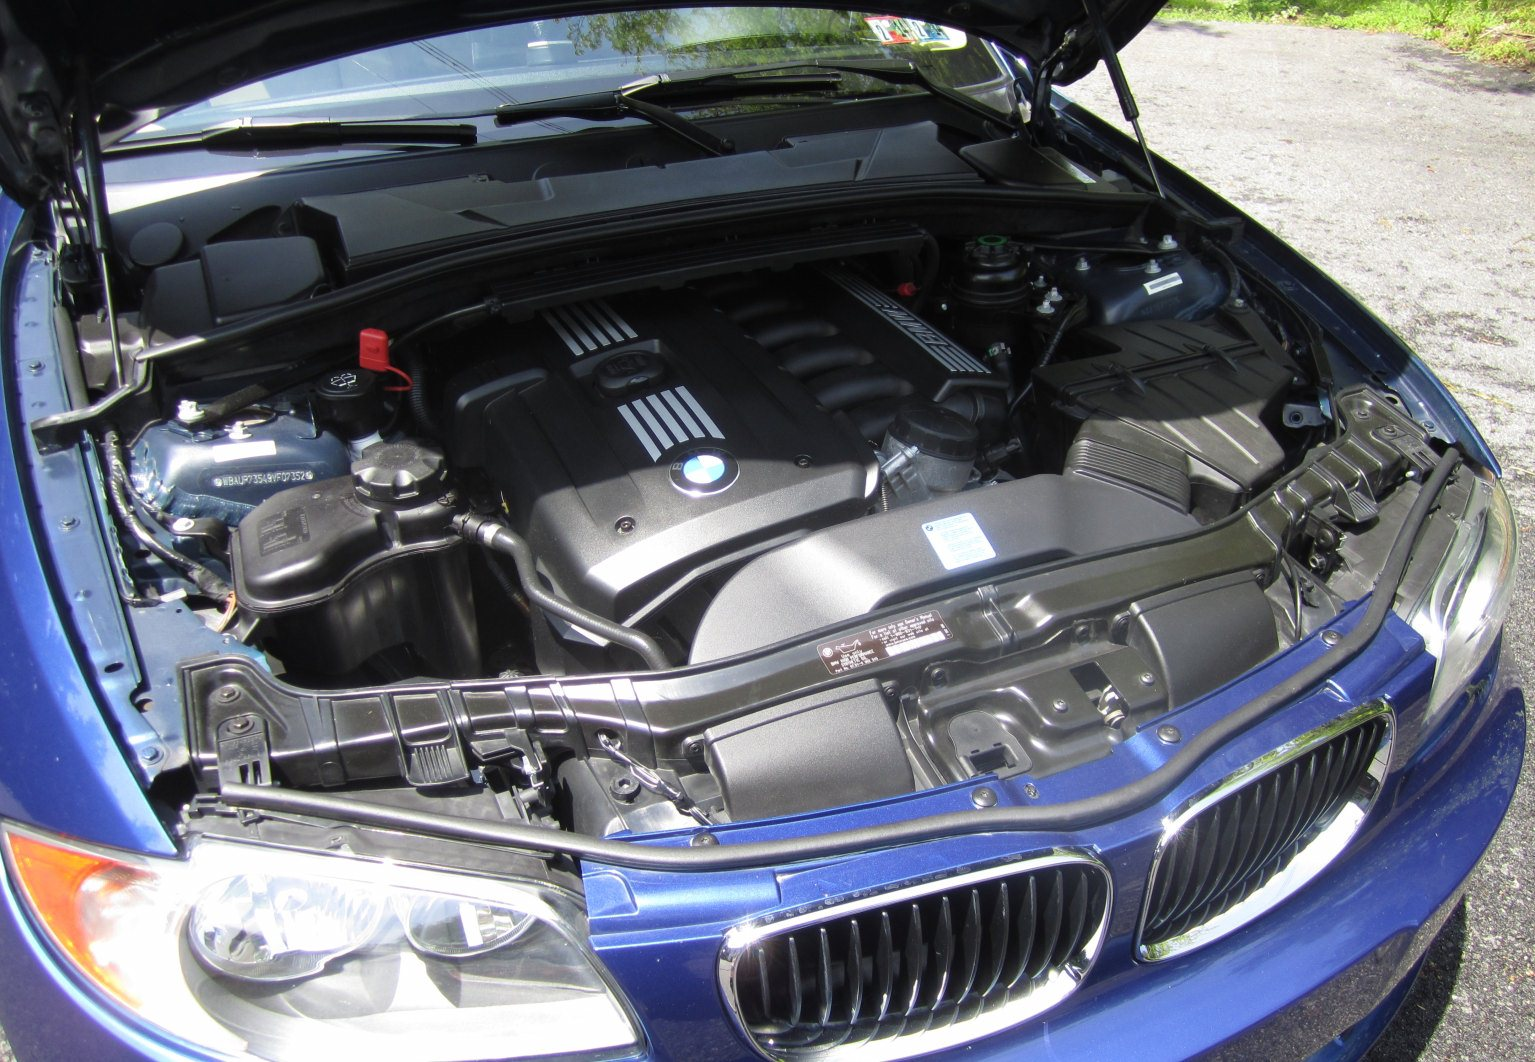 series engine bay cleaning detailing